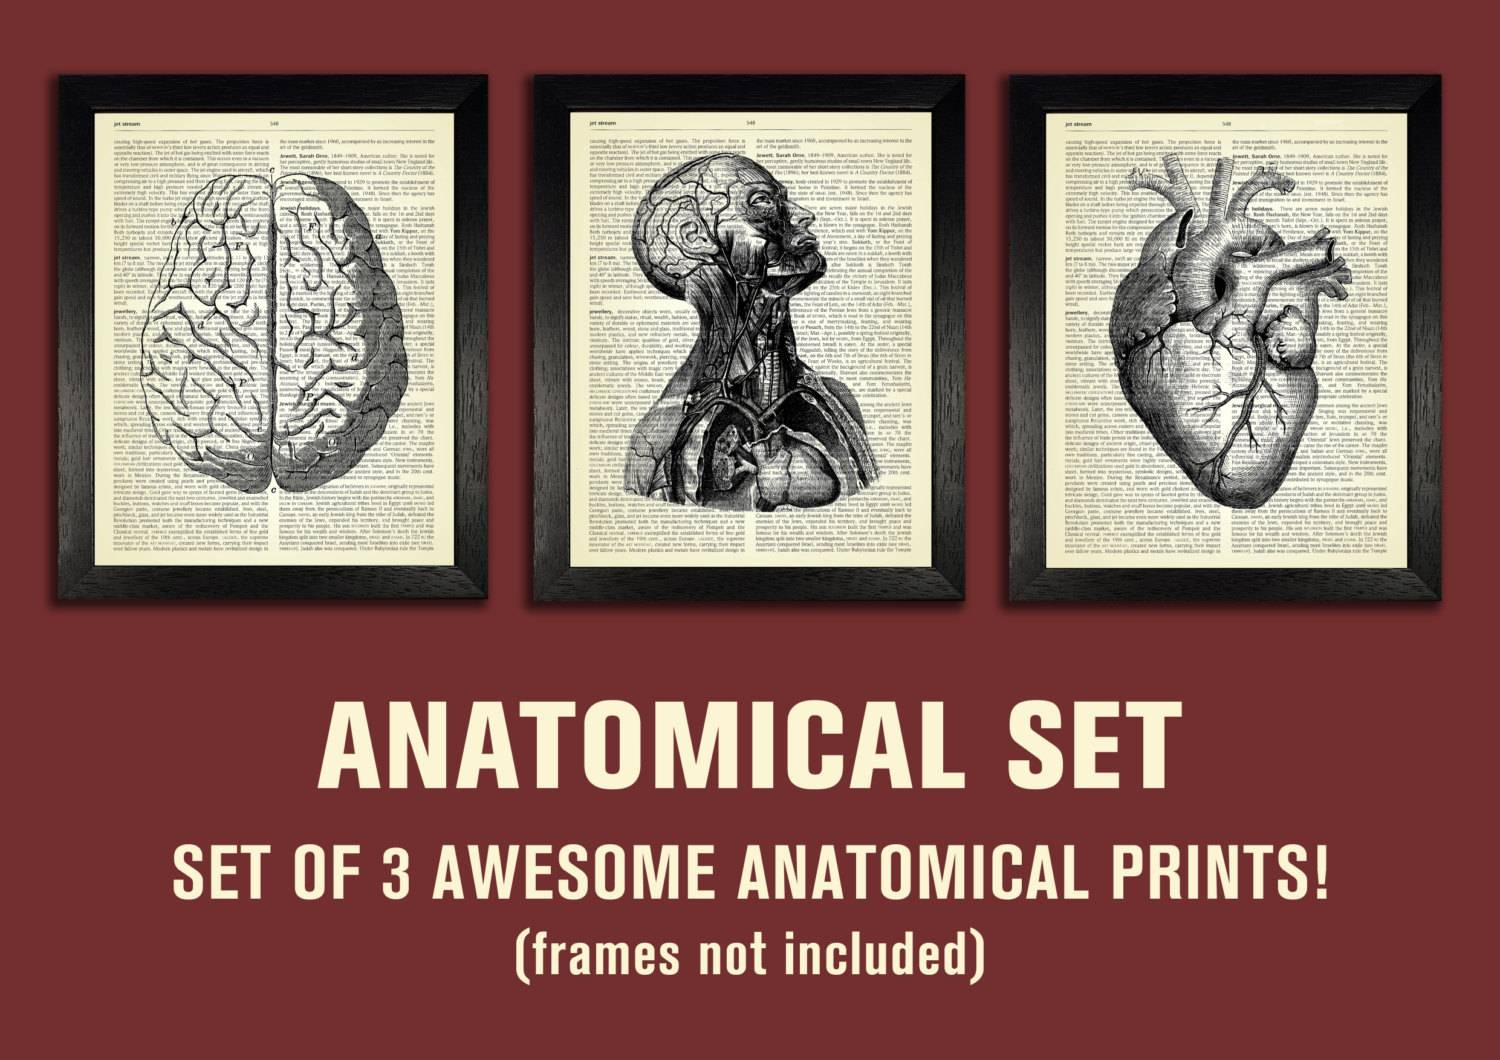 Anatomical Set Anatomy Print Set Medical Wall Art Intended For 2018 Medical Wall Art (View 4 of 20)